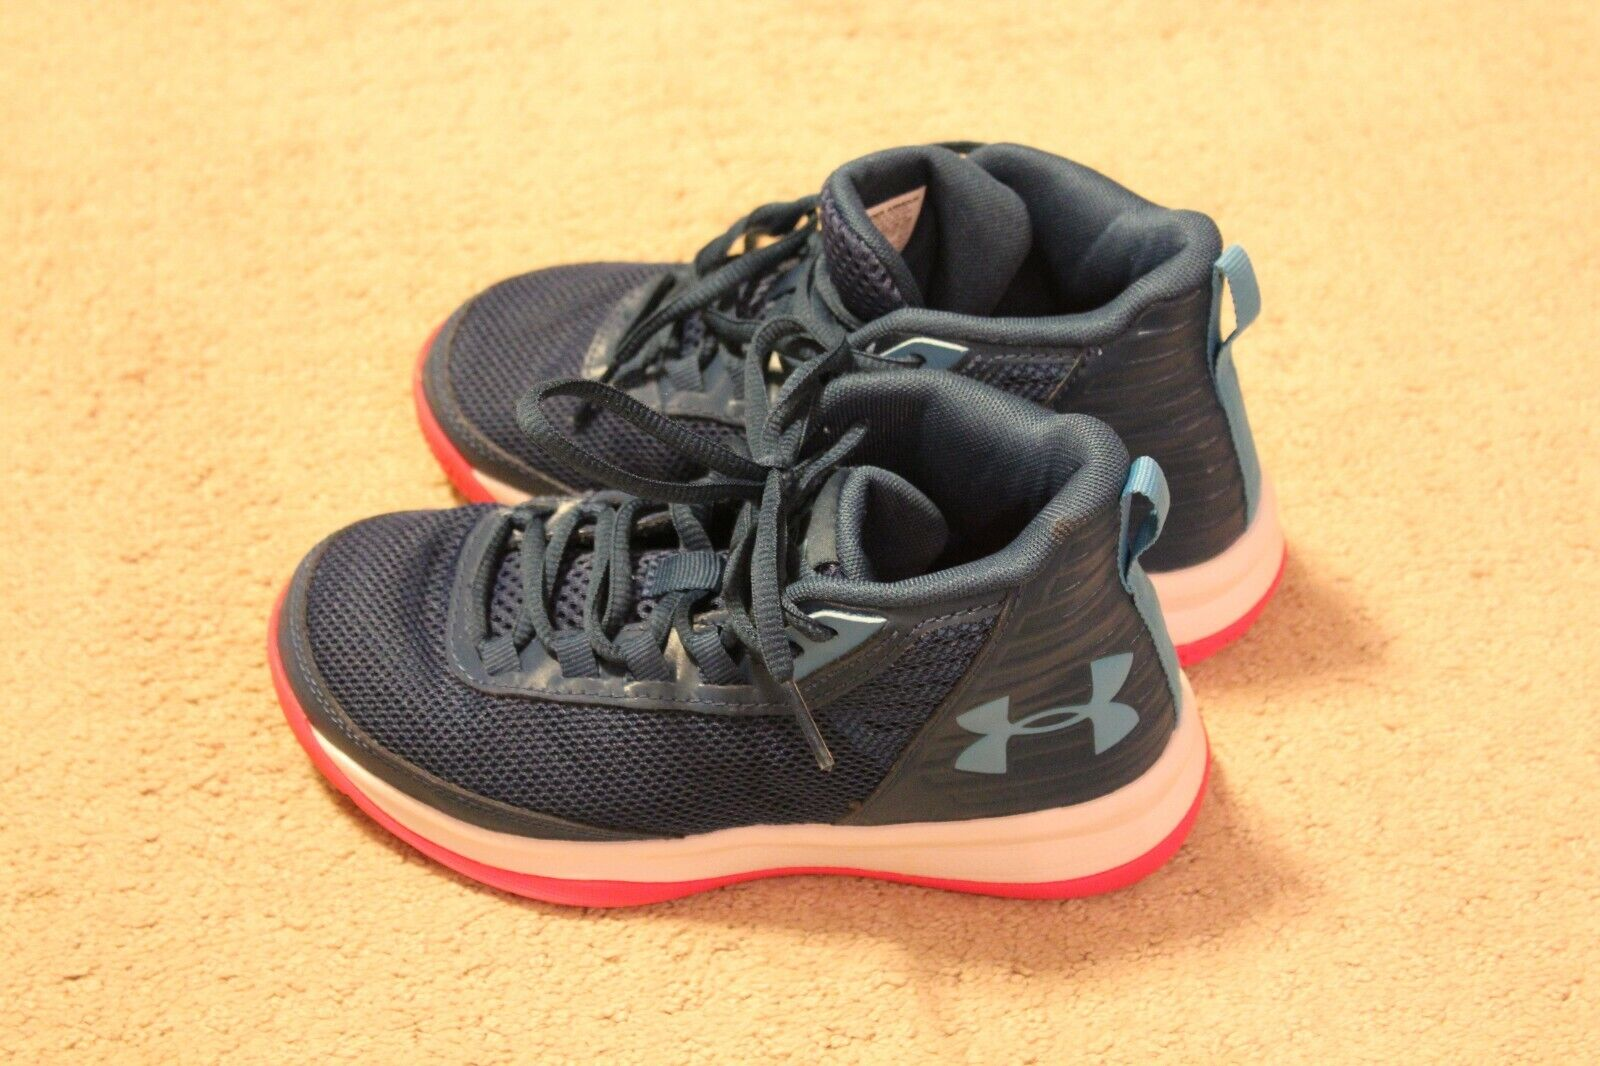 Under Armour BPS Jet 2018 Size 1Y